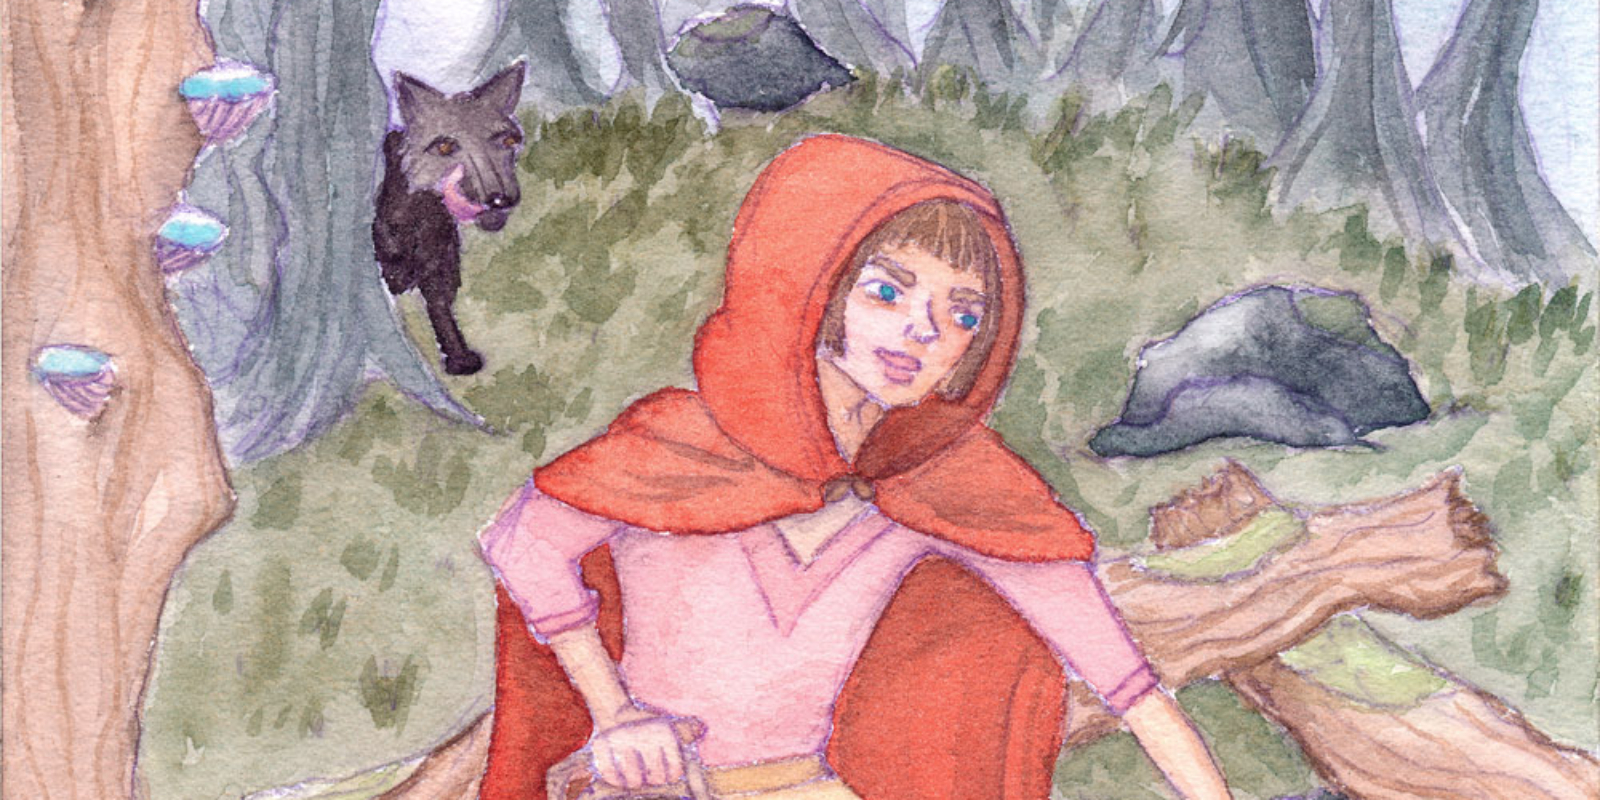 A watercolor painting illustrating Little Red Riding Hood picking mushrooms in the forest. A black wolf is licking his lips in the background.